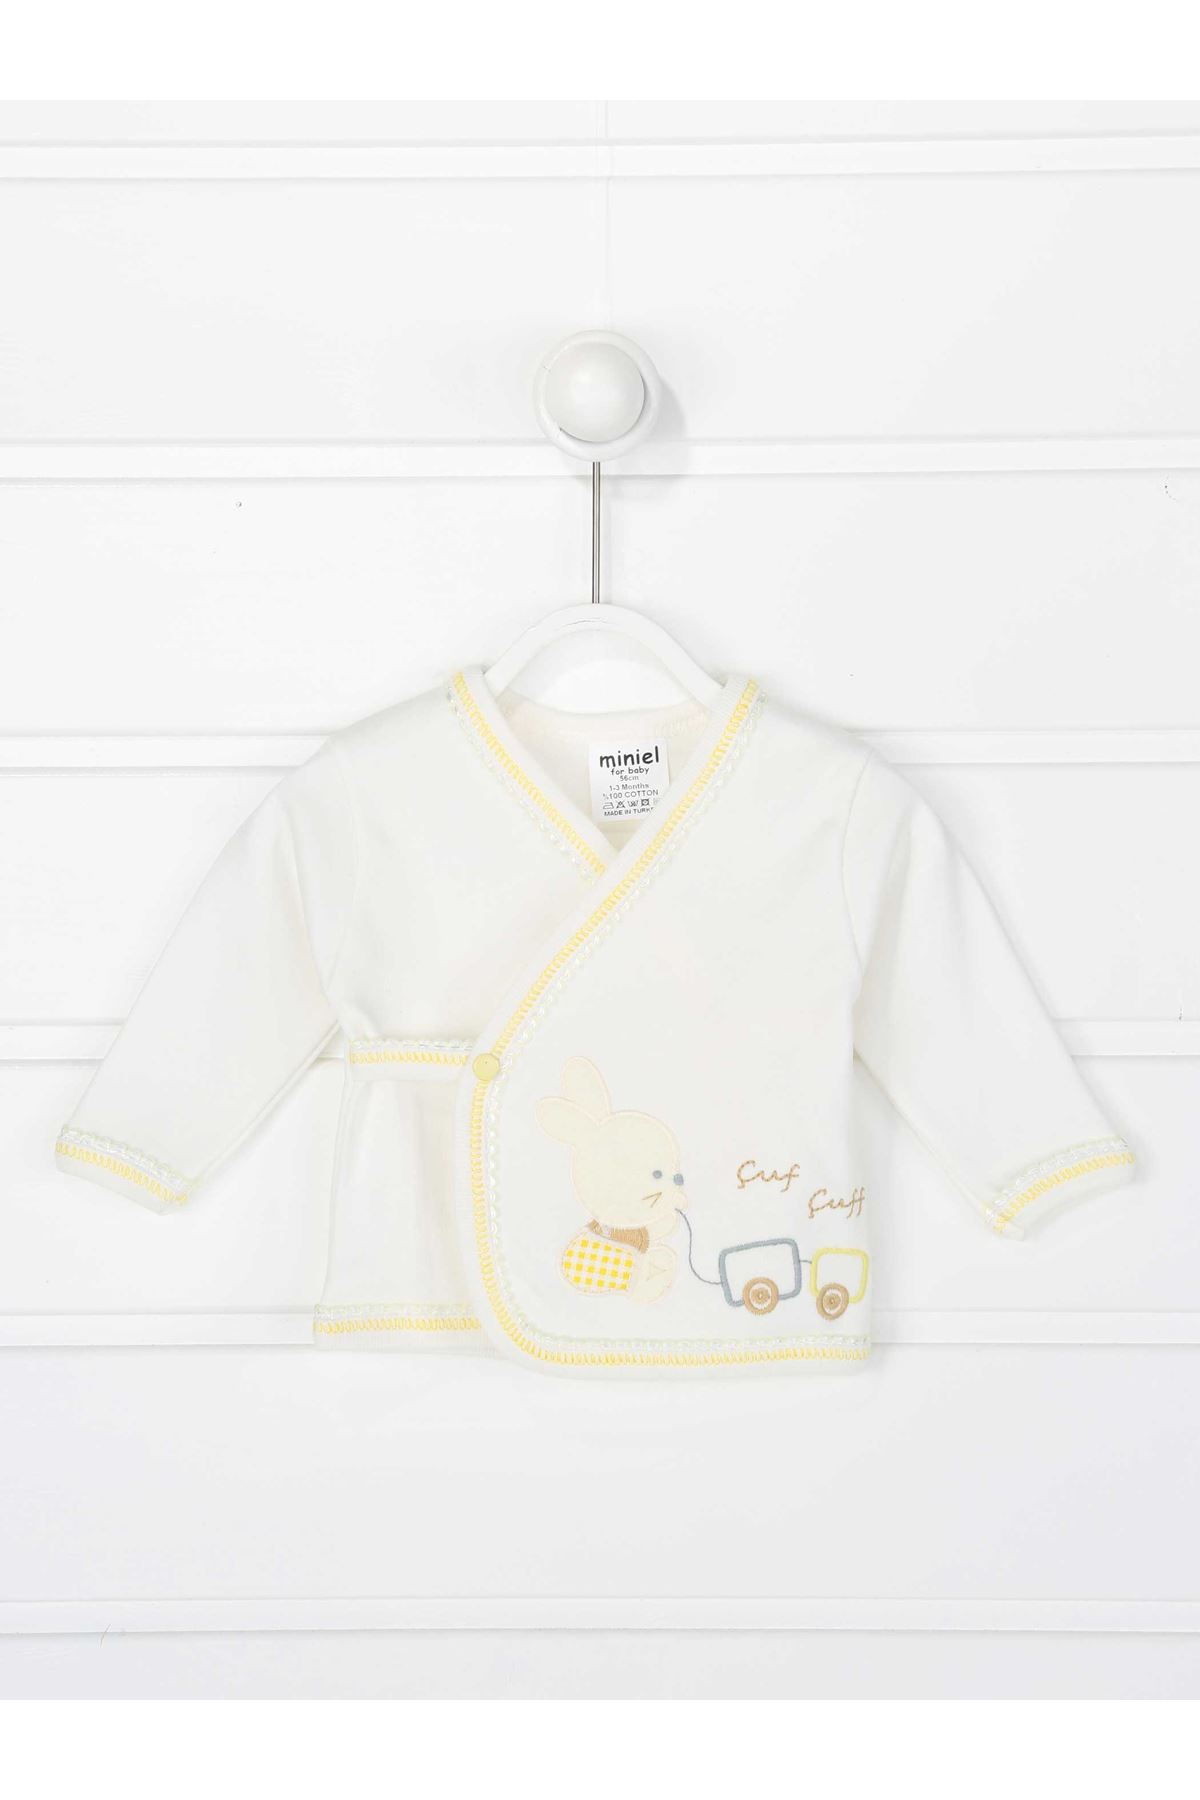 Yellow Newborn Baby Boy 5 piece suit set cotton Gentleman Princess Hospital Outlet daily casual Babies clothes style fashion